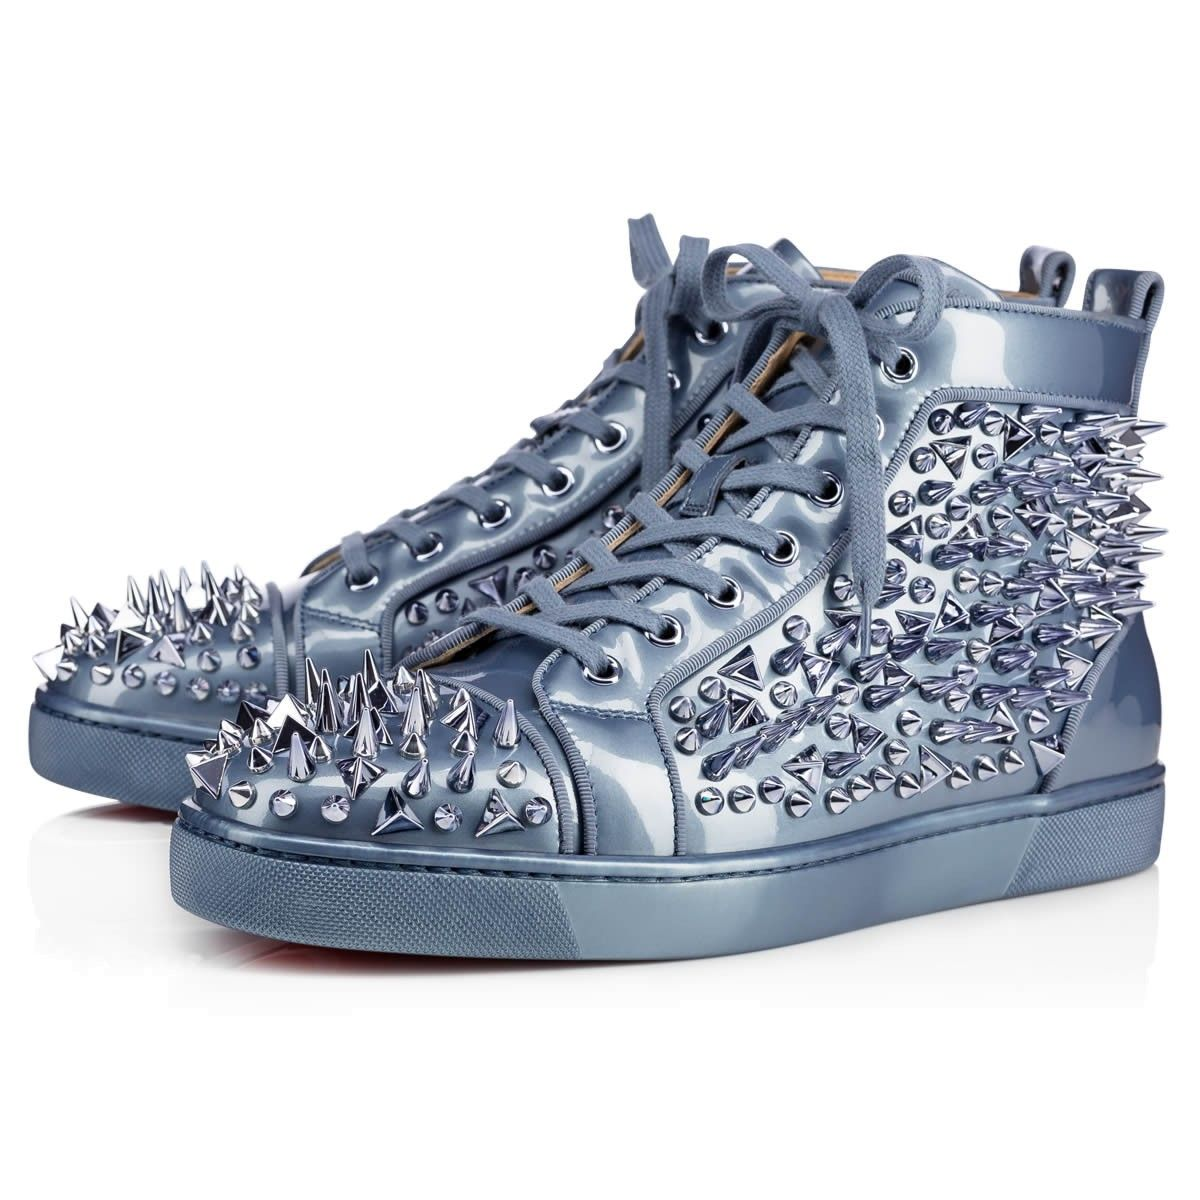 d2b6e12c8395 CHRISTIAN LOUBOUTIN Louis Pik Pik Orlato Men S Flat Poseidon Metal Patent - Men  Shoes - Christian Louboutin.  christianlouboutin  shoes